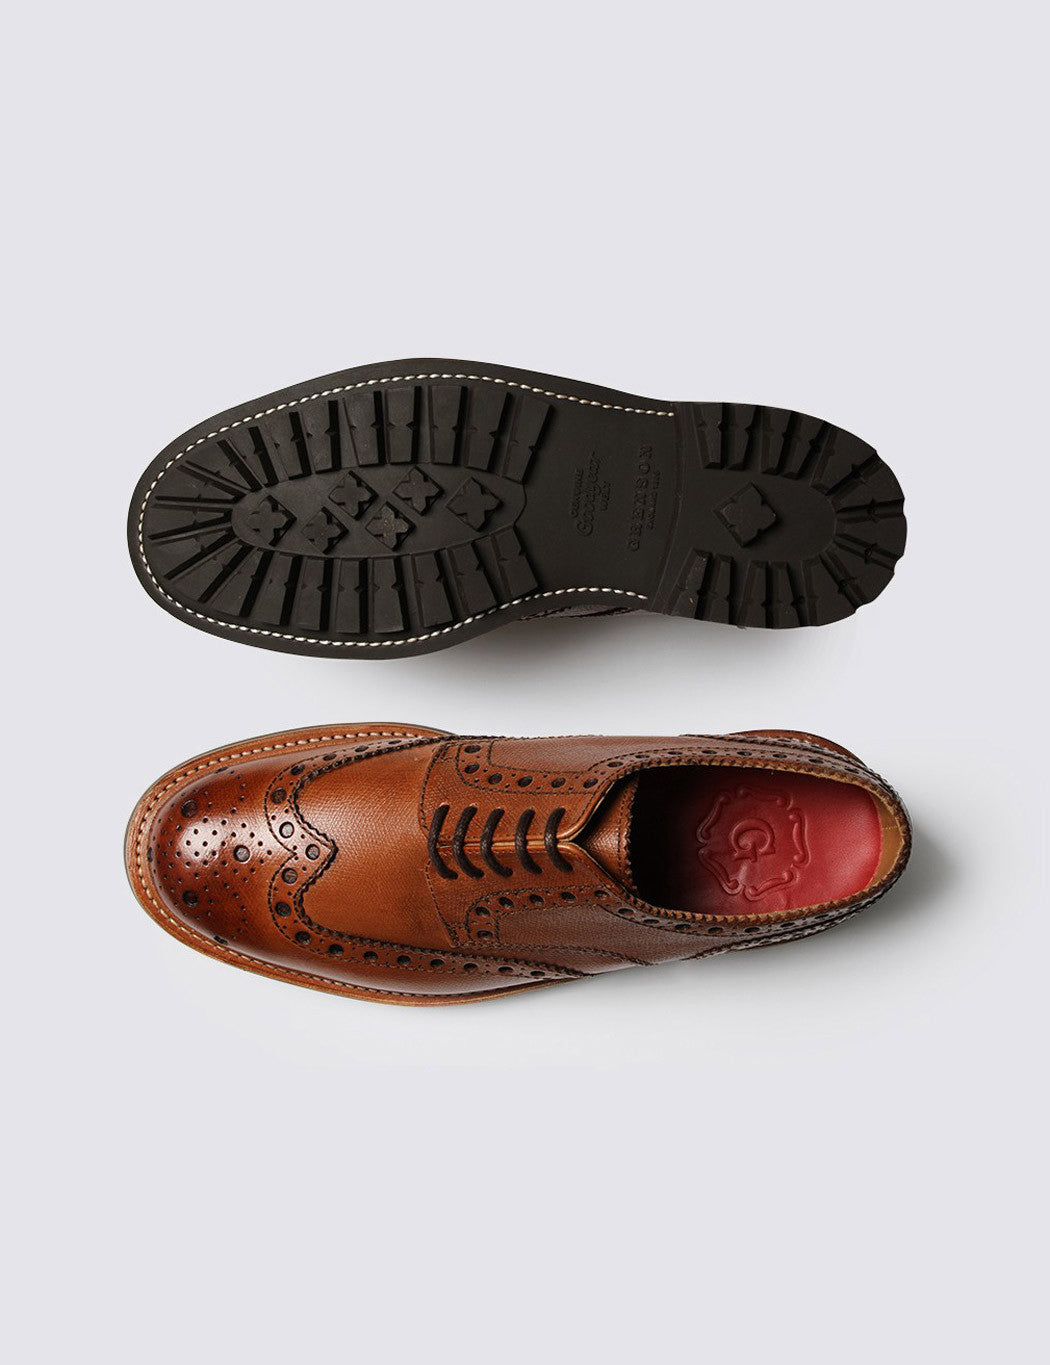 Grenson Archie Commando Sole Brogue Shoes - Tan